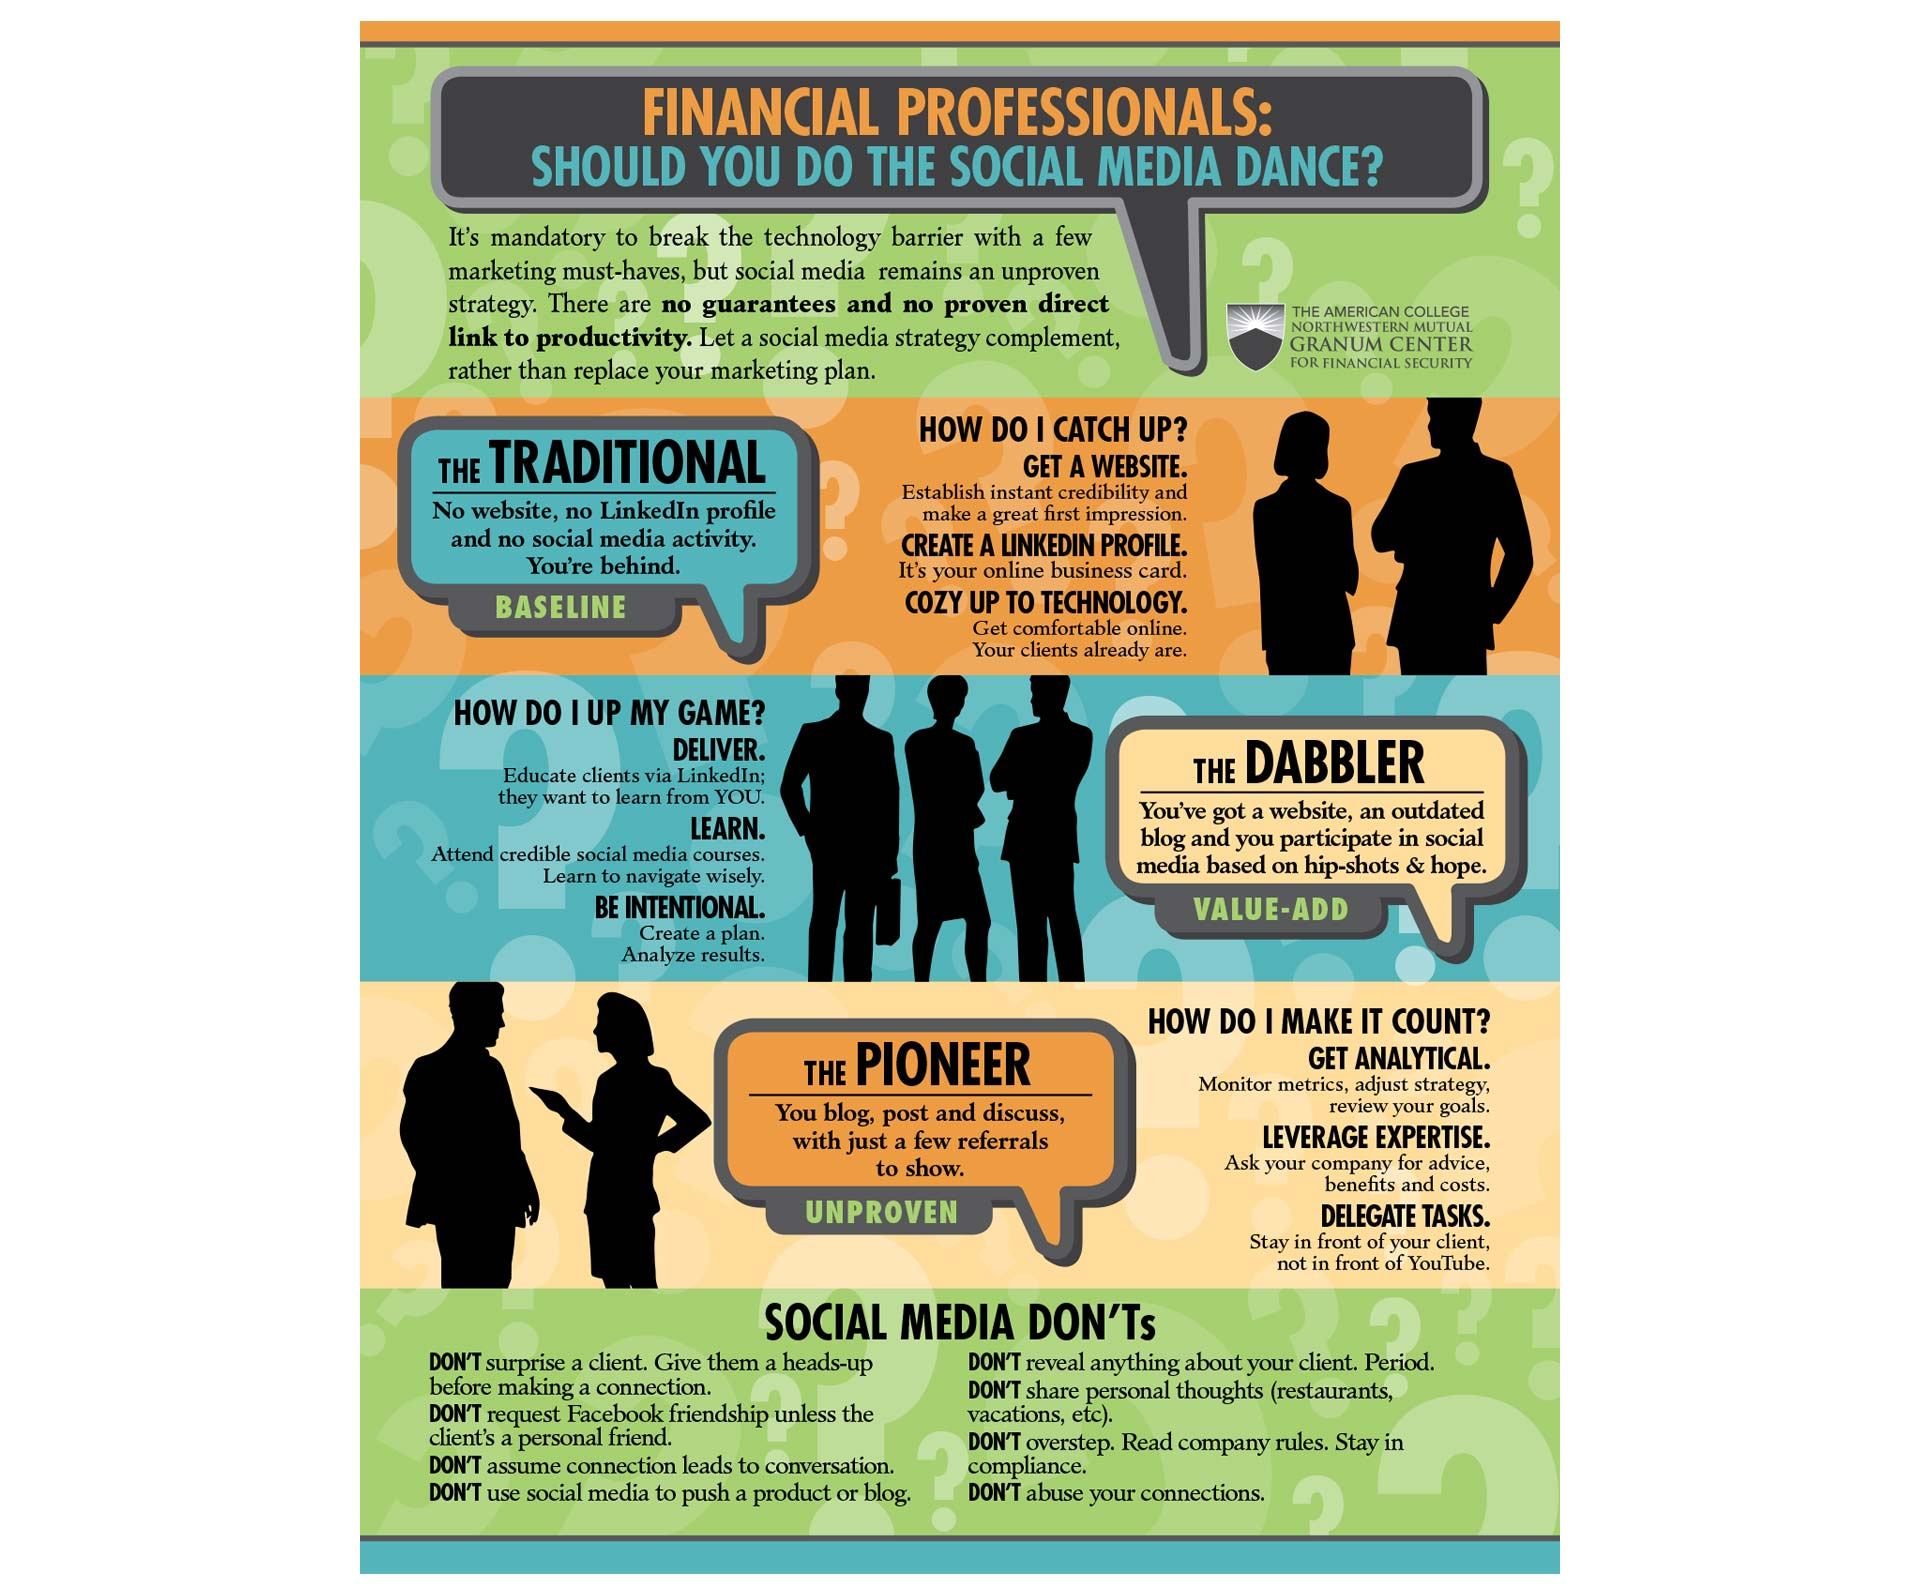 Financial Professionals and Social Media